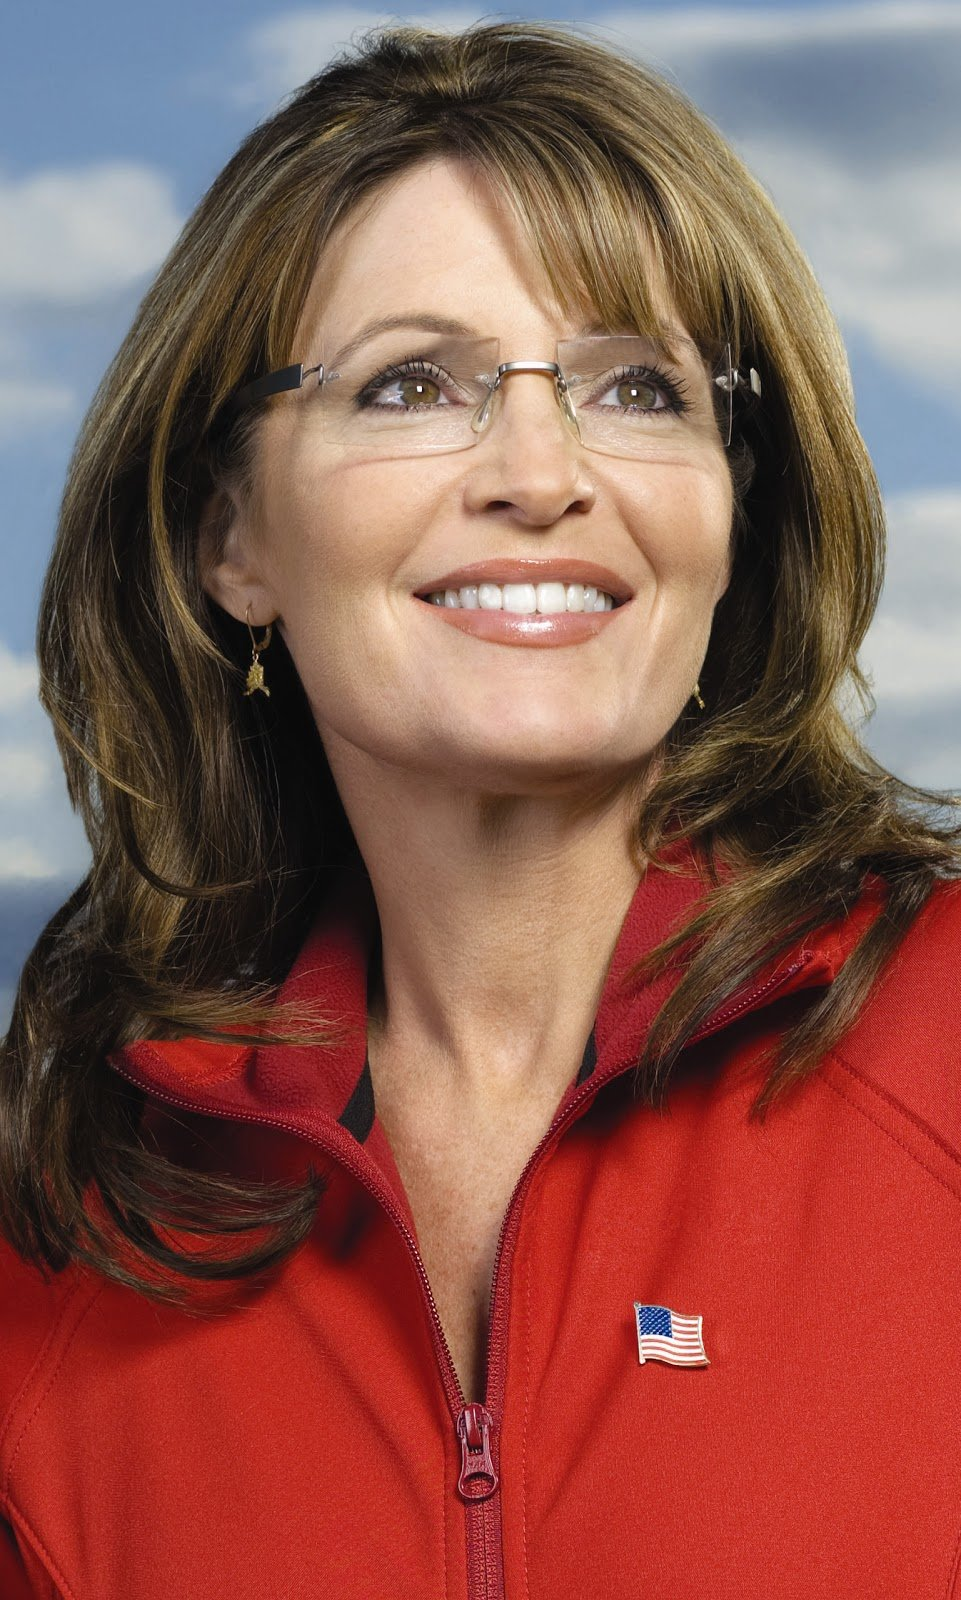 The Best A New Life Hartz Sarah Palin Hairstyles Pictures